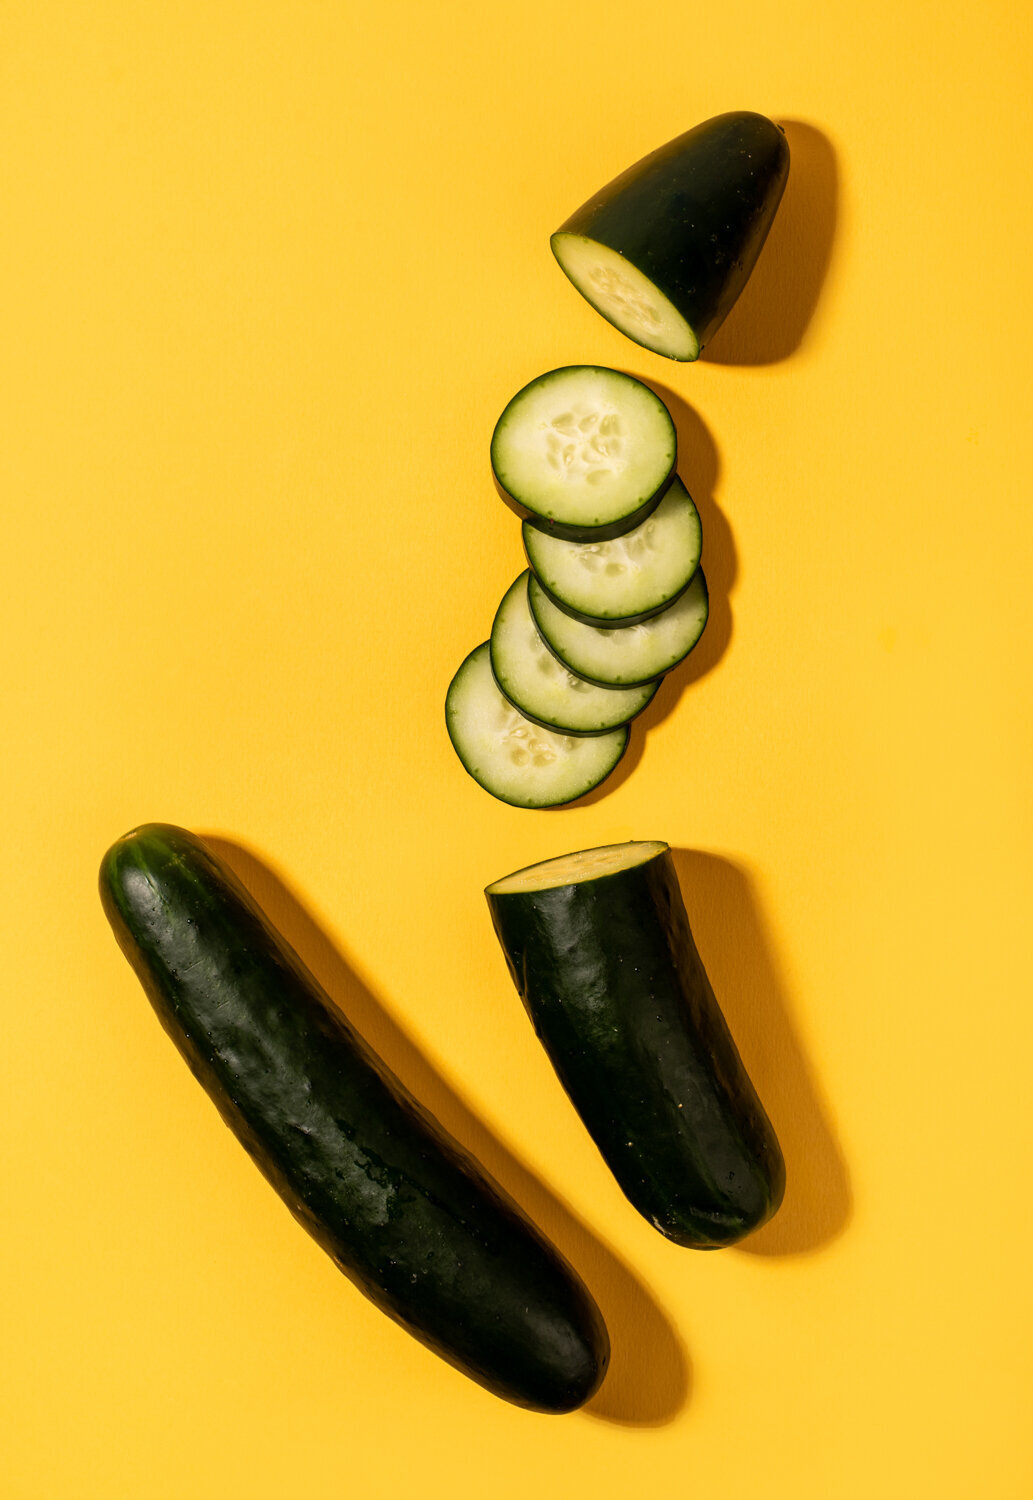 sliced cucumber on yellow